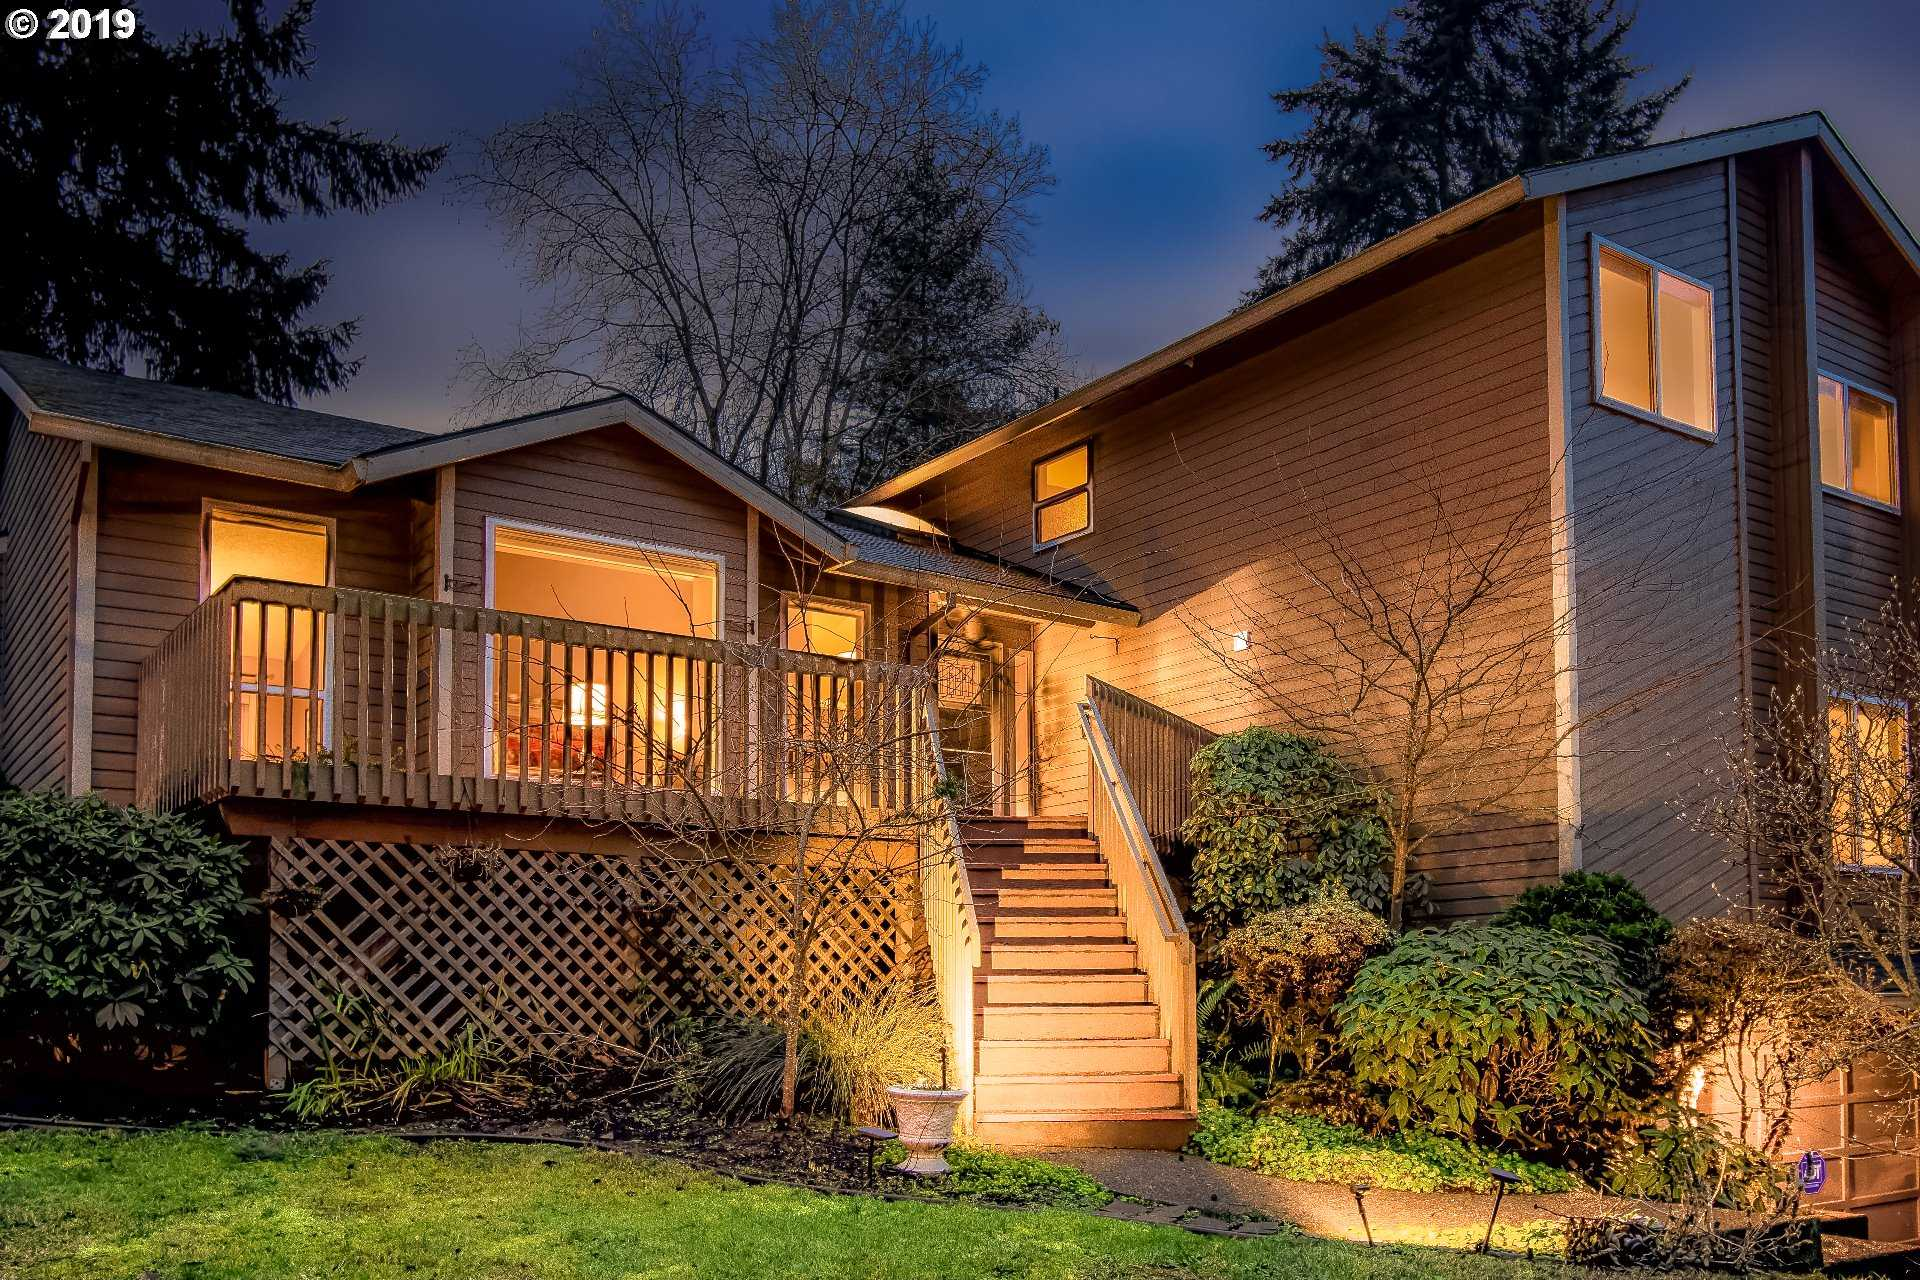 $539,900 - 4Br/3Ba -  for Sale in West Linn